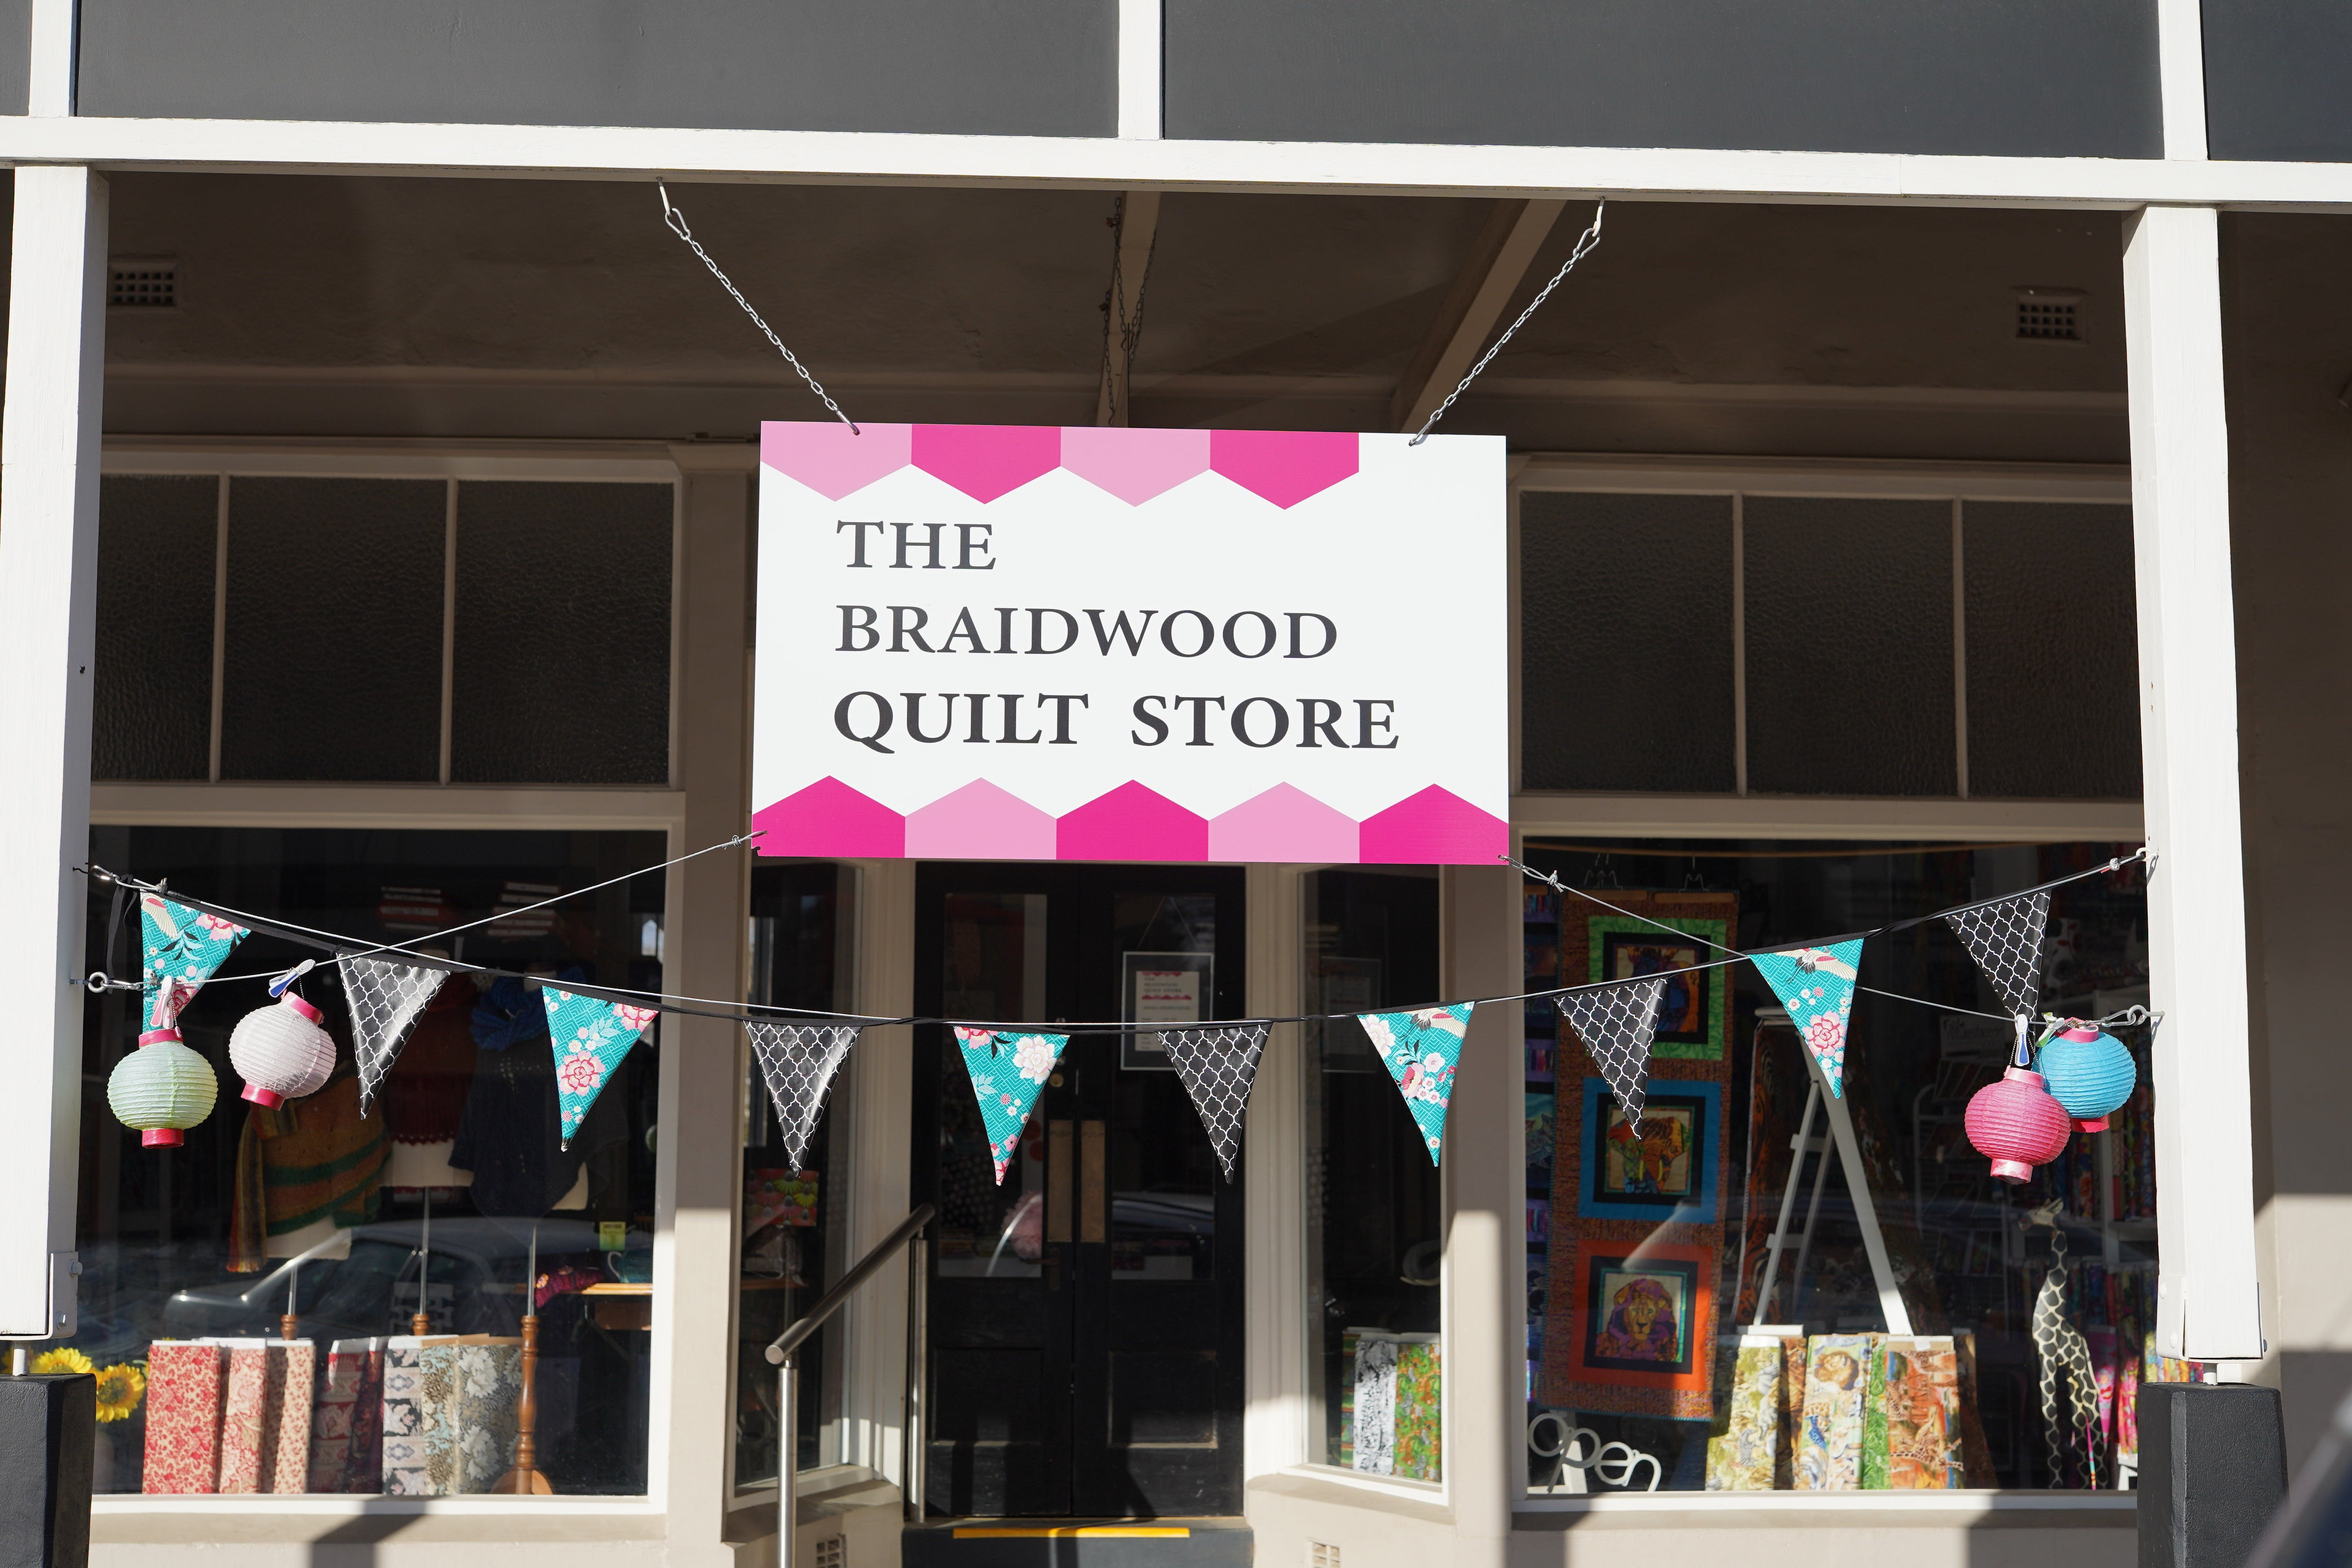 The Braidwood Quilt Store - Tourism Adelaide